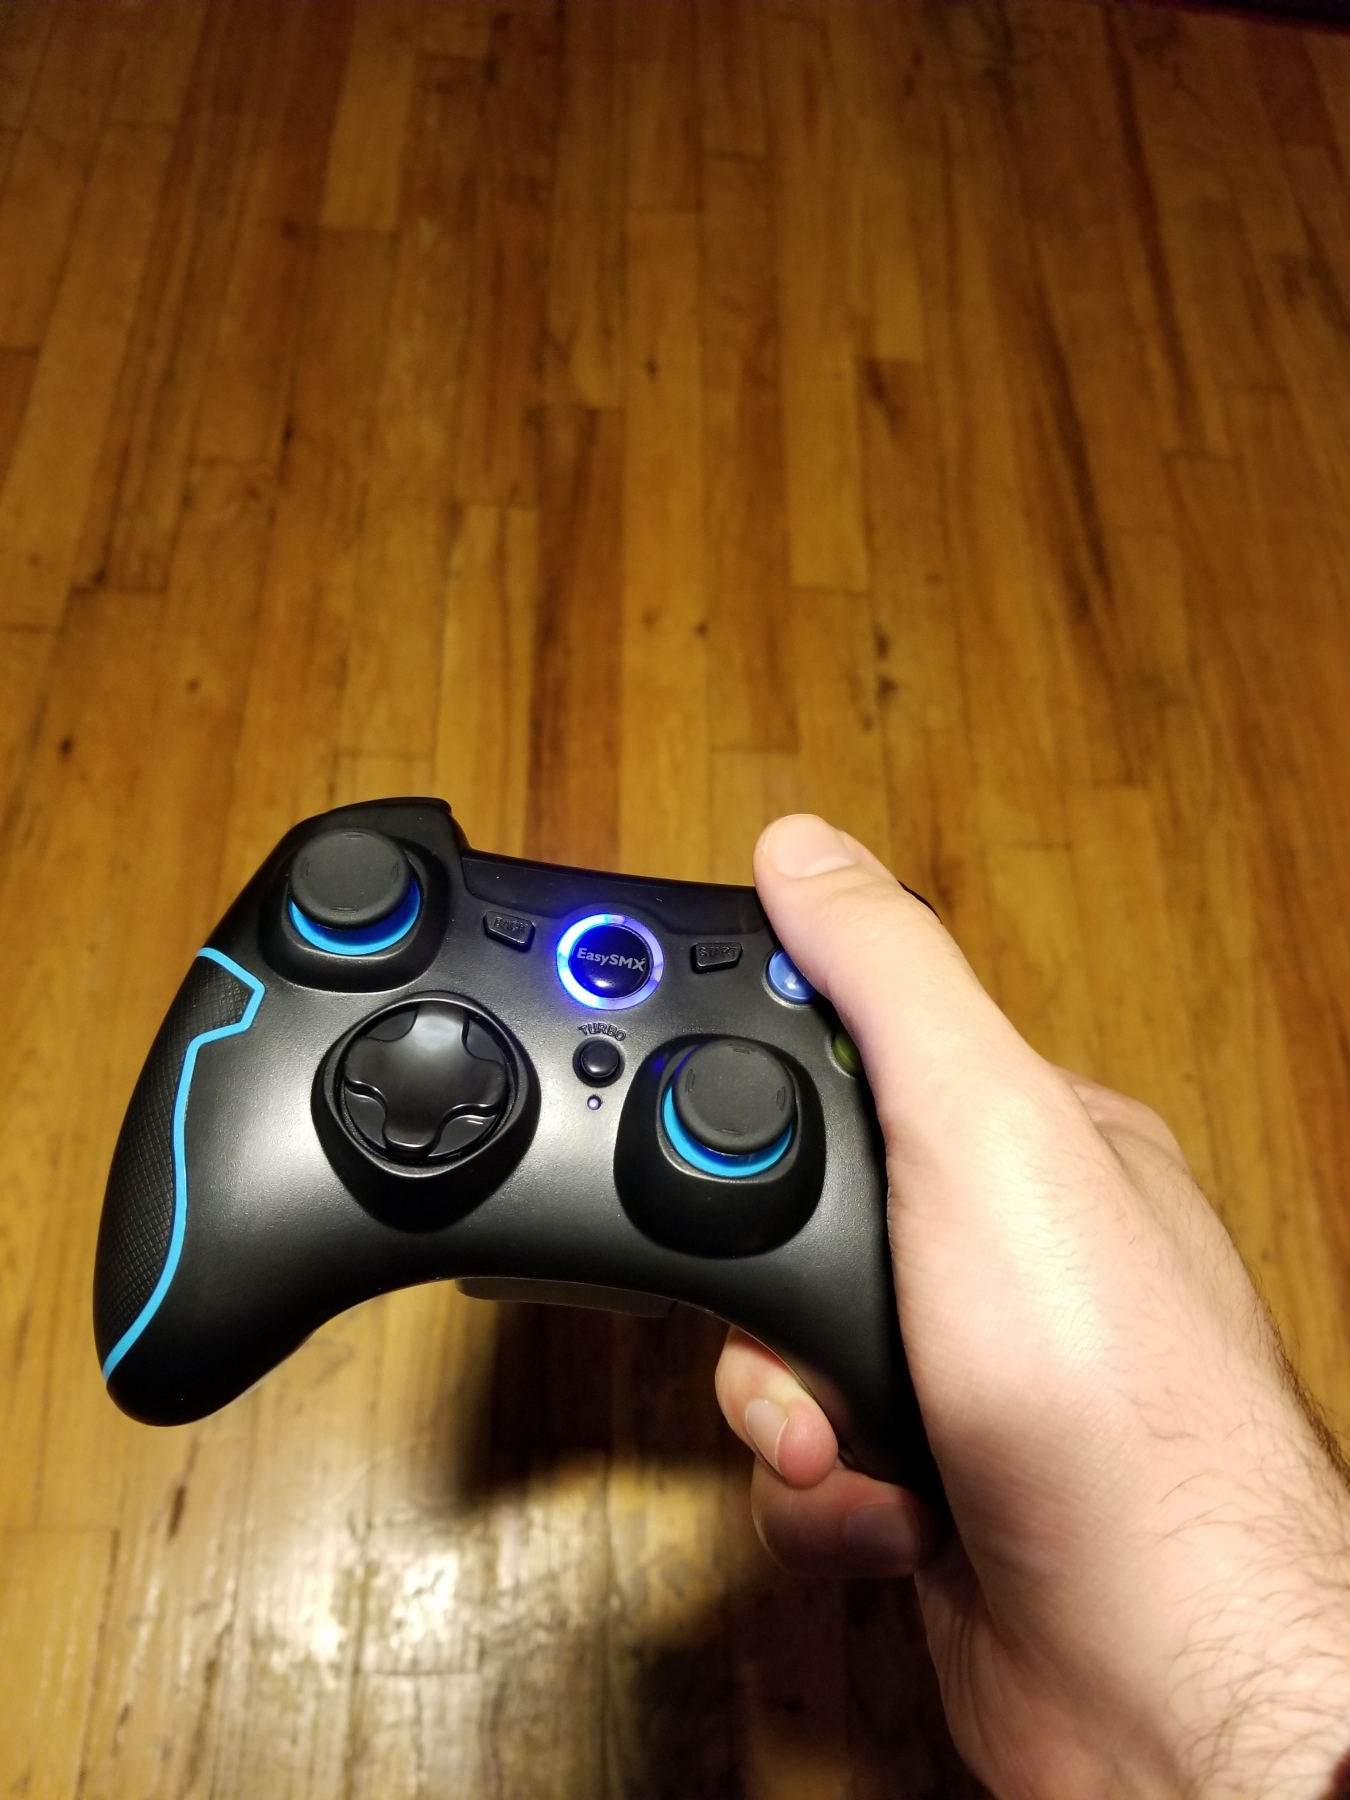 Overall, a nice game controller that have different modes for different devices. (November 13, 2017)